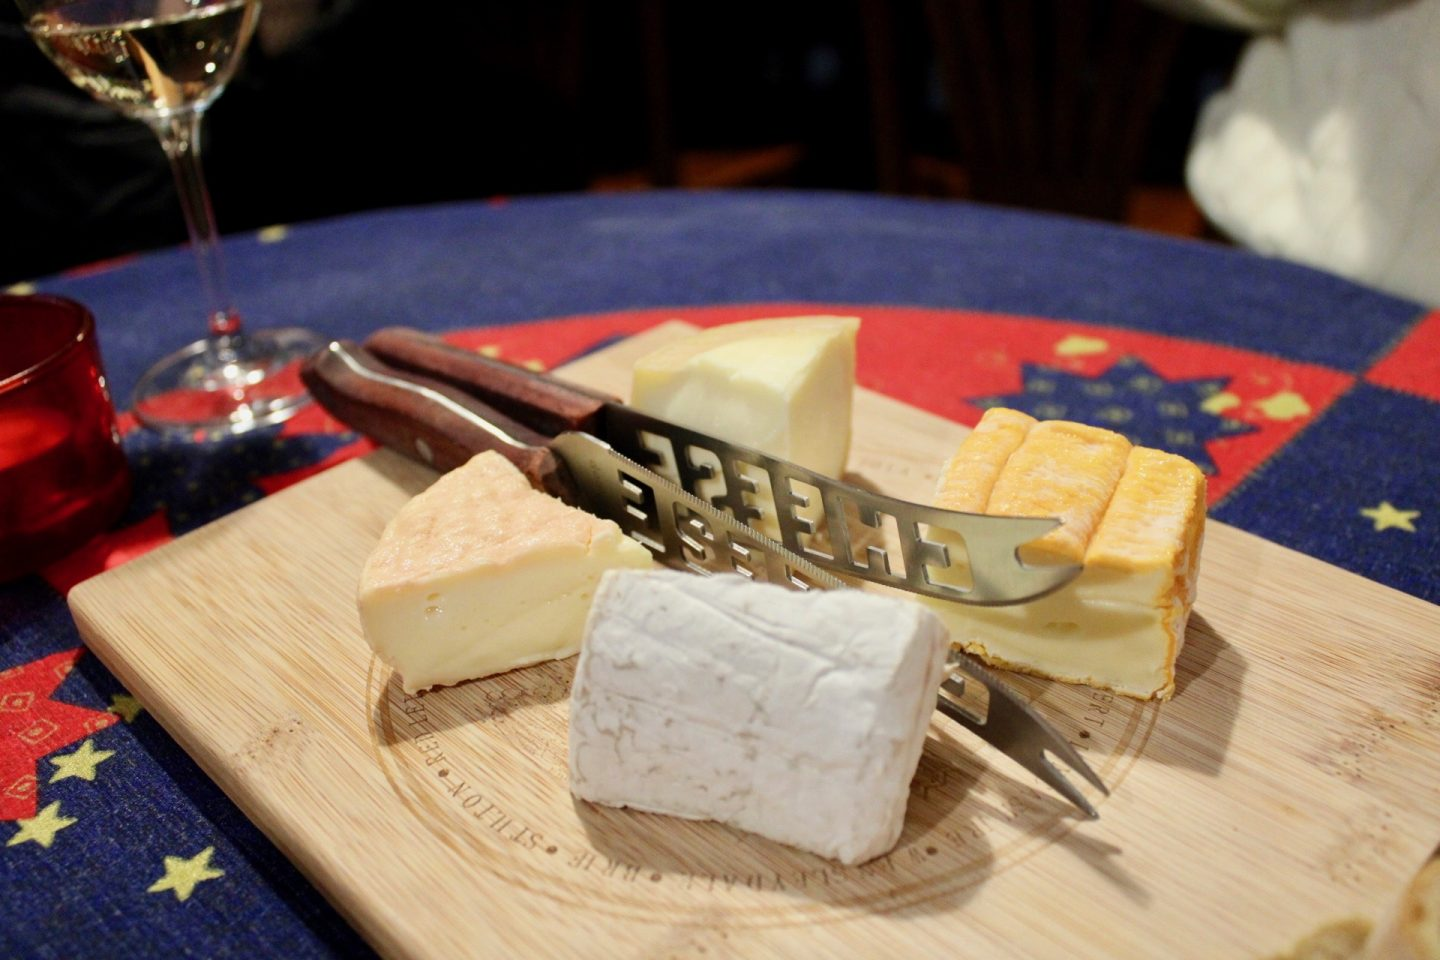 best bars in wroclaw, wine bars in Wroclaw, cheese board with 4 large blocks of cheese and a cheese knife